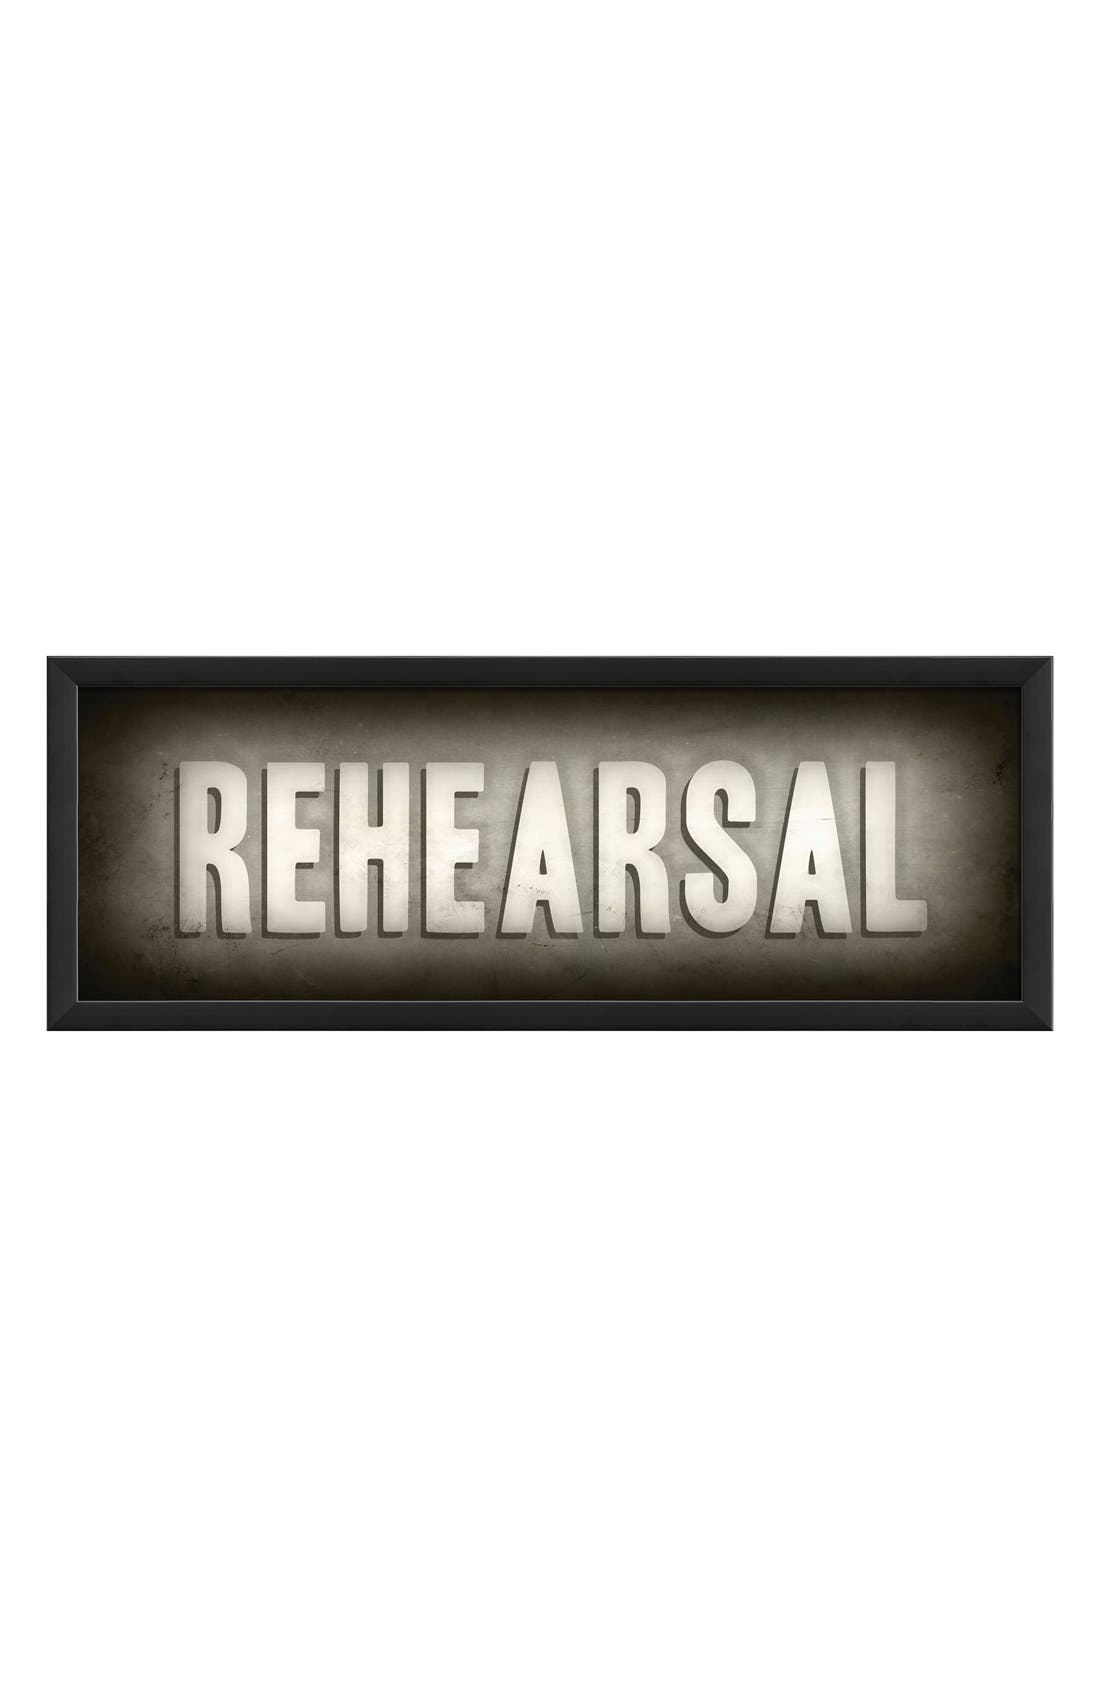 Alternate Image 1 Selected - Spicher and Company 'Rehearsal' Vintage Look Theater Sign Artwork